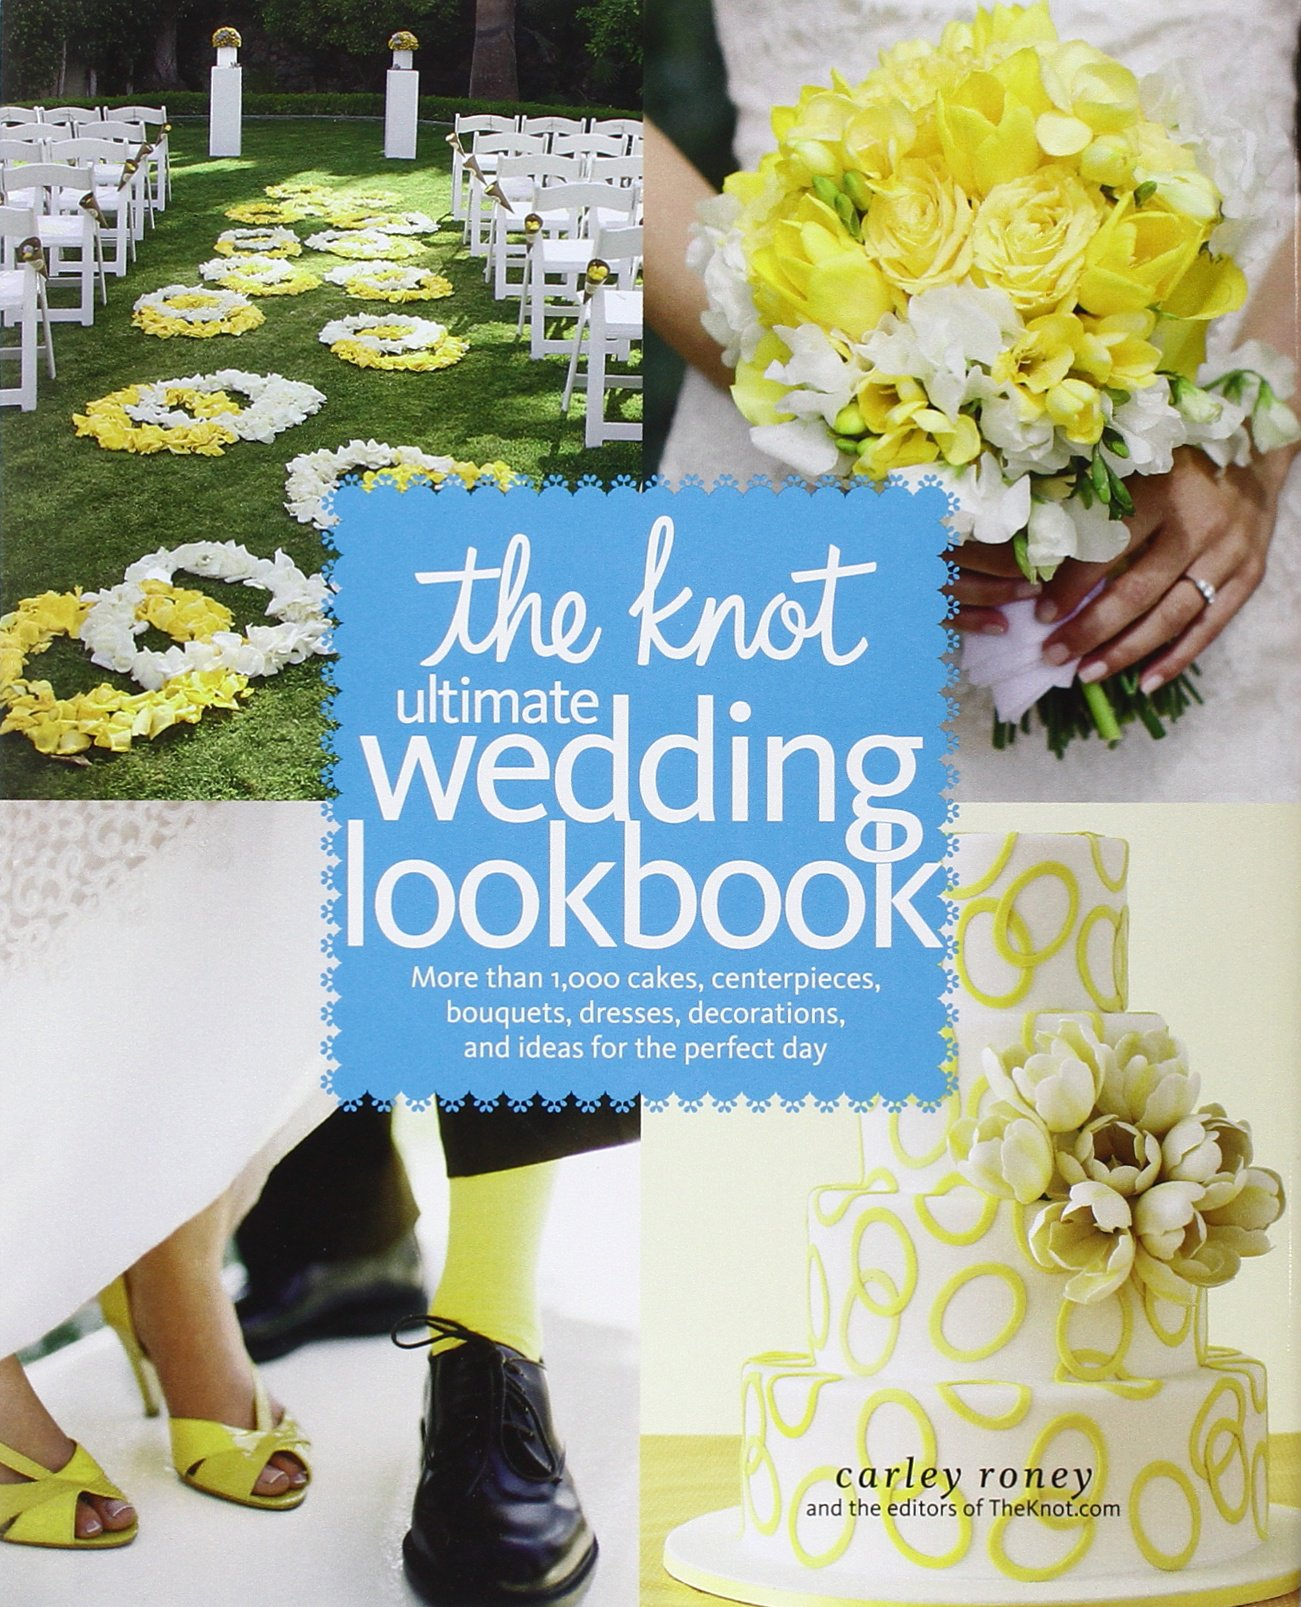 The Knot Ultimate Wedding Lookbook: More Than 1,000 Cakes, Centerpieces, Bouquets, Dresses, Decorations, and Ideas for the Perfect Day Hardcover – by Carley Roney  (Author), Editors of The Knot (Author)